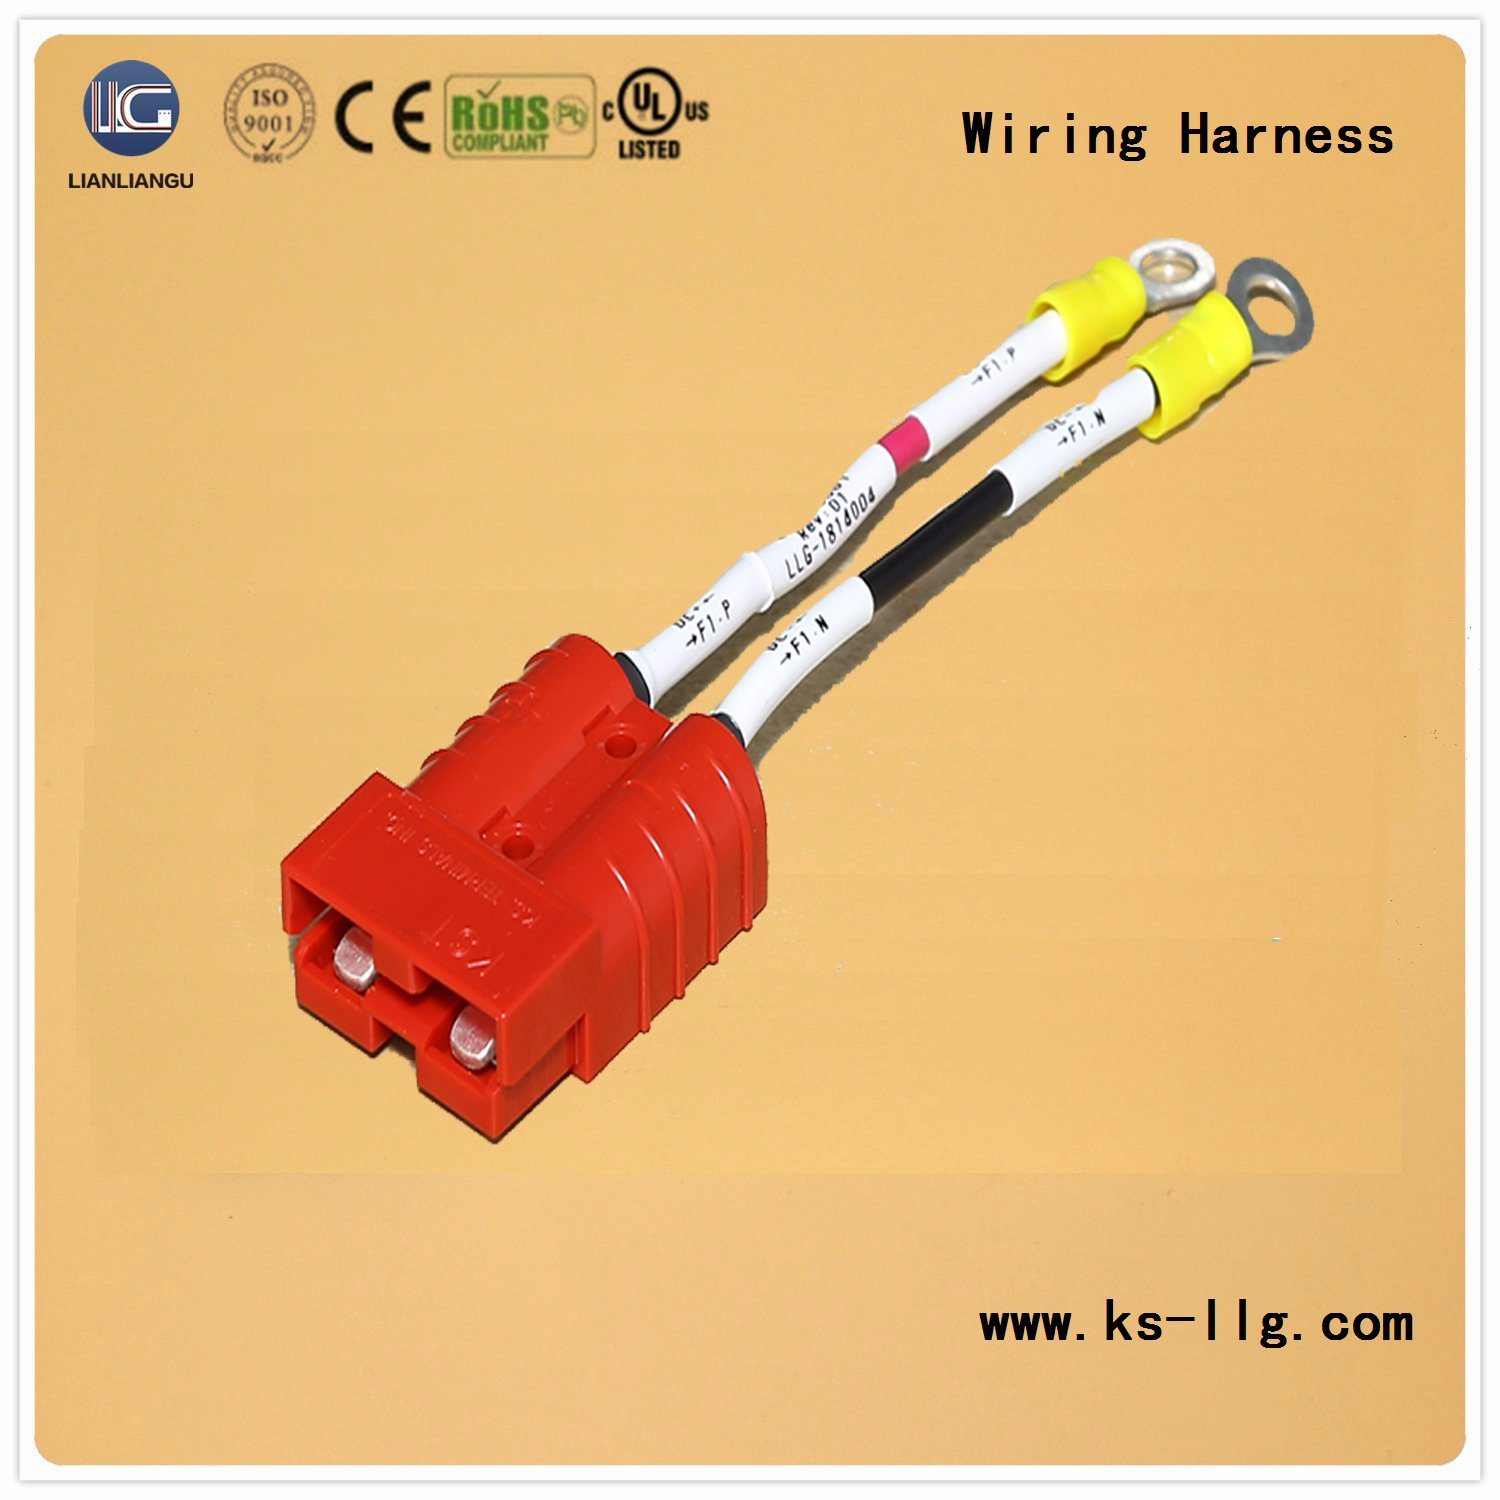 Wholesale Custom Wire Connector Buy Reliable F1 Wiring Harness Cord Kst China Factory For Diabetic Treatment Devices